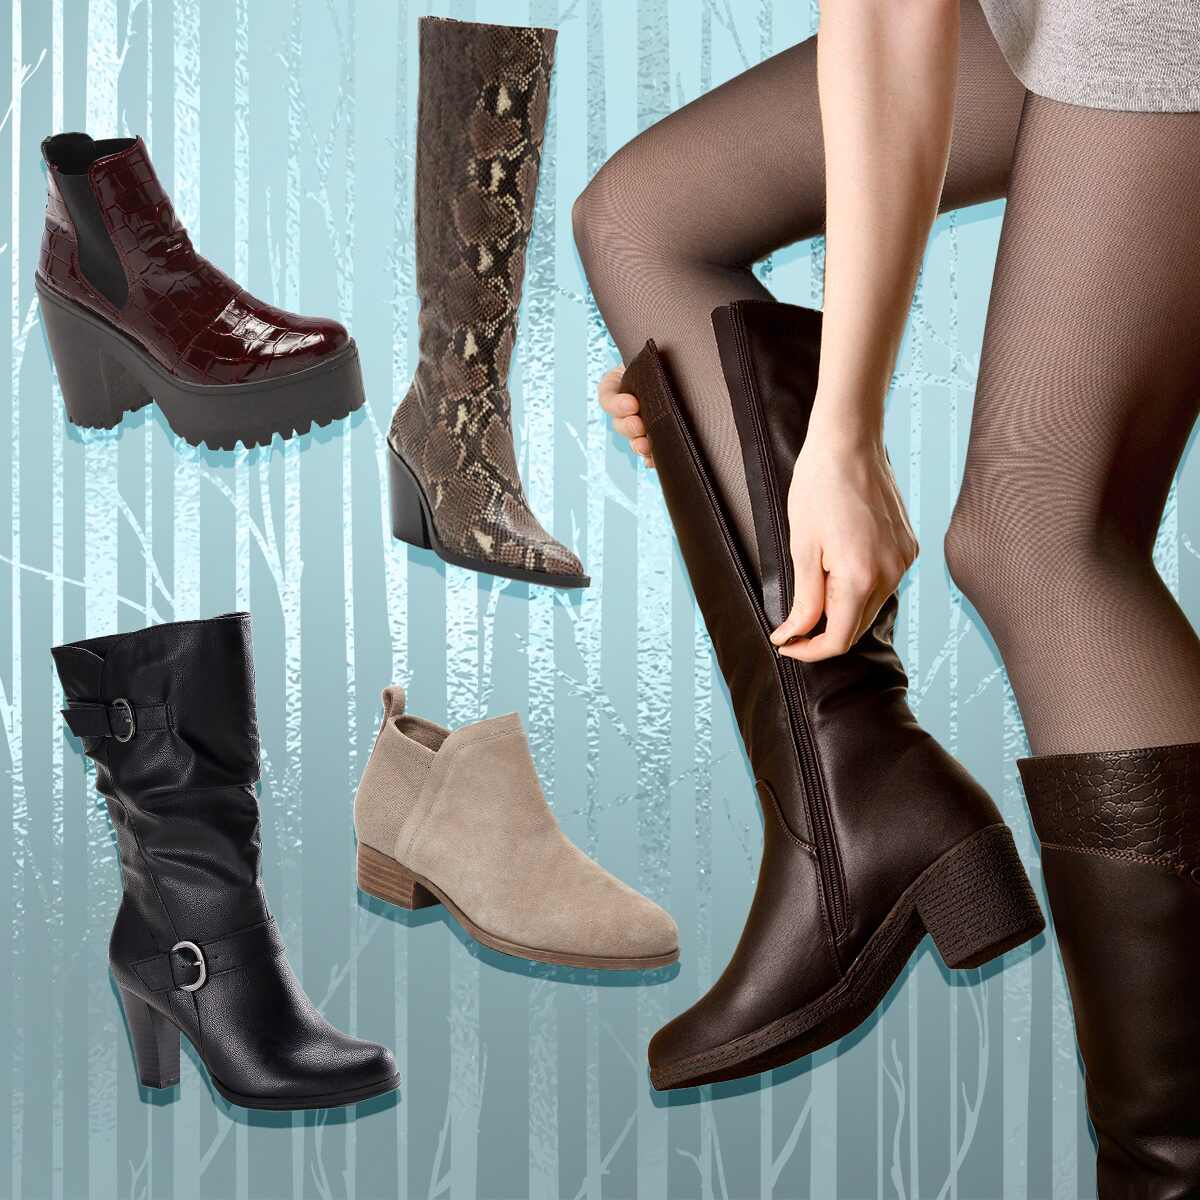 E-comm: Best Boots and Booties Under $100